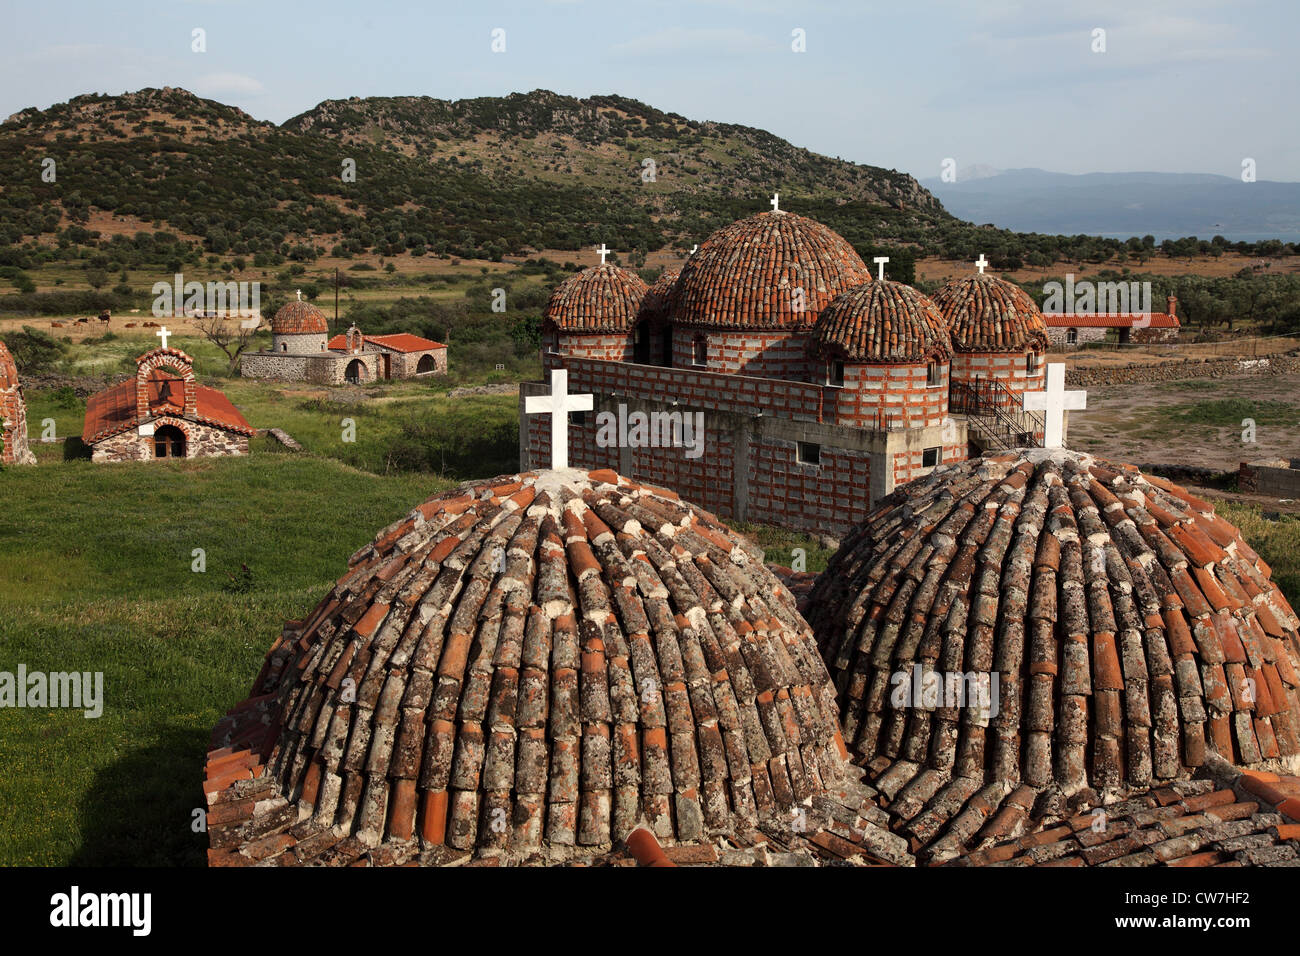 monastery Dafia at Dafia, Greece, Lesbos - Stock Image